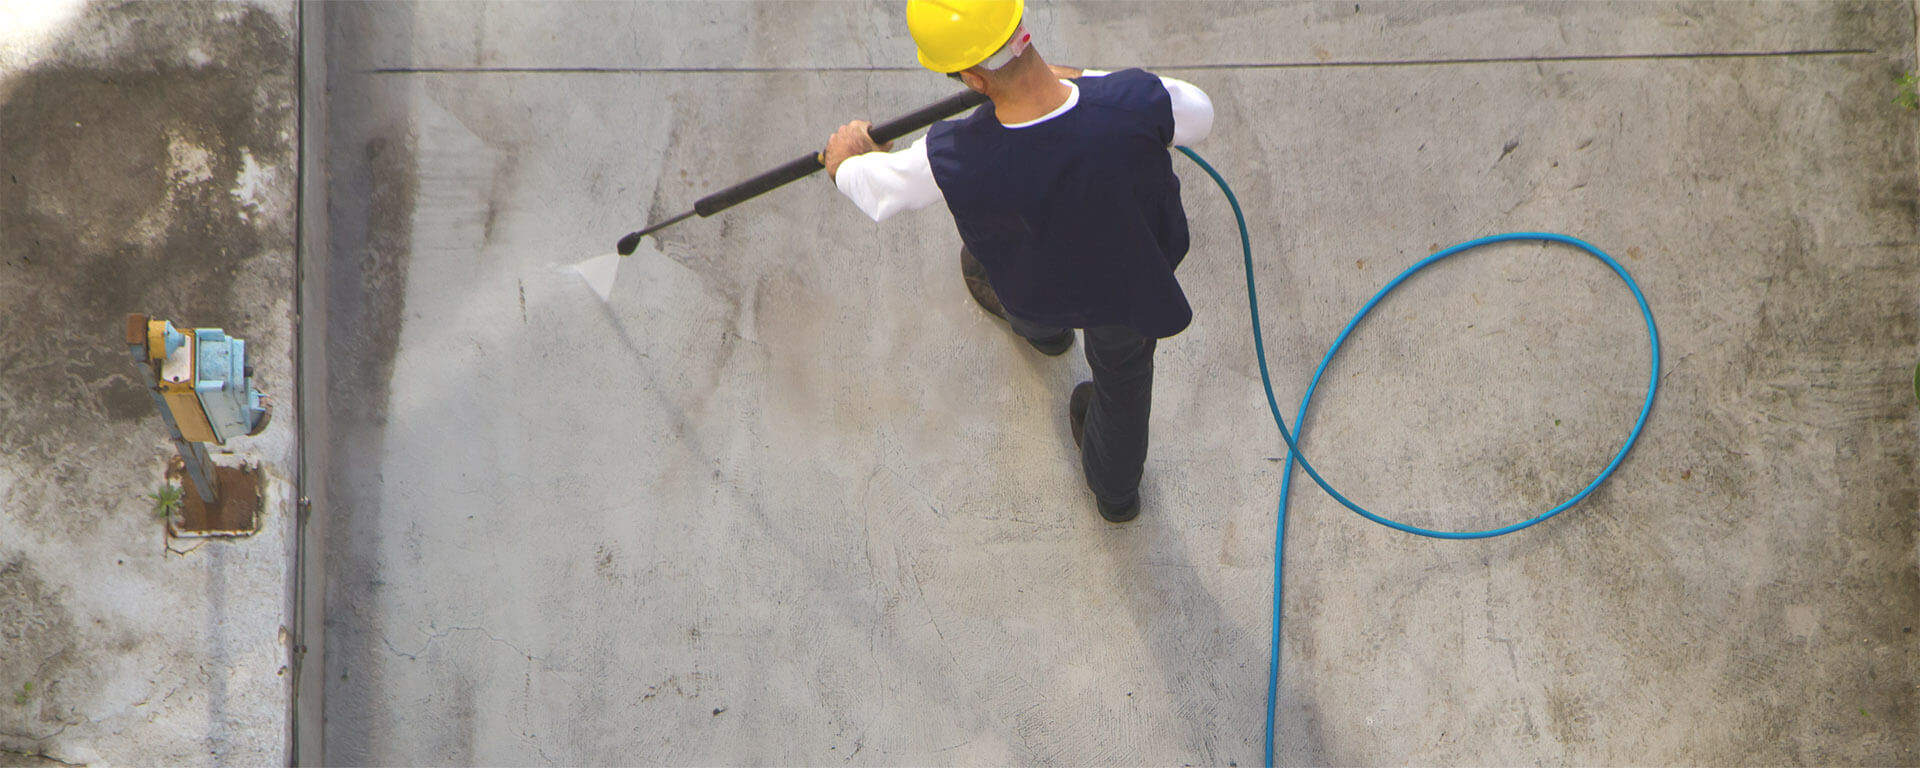 Commercial and Residential Pressure Washing